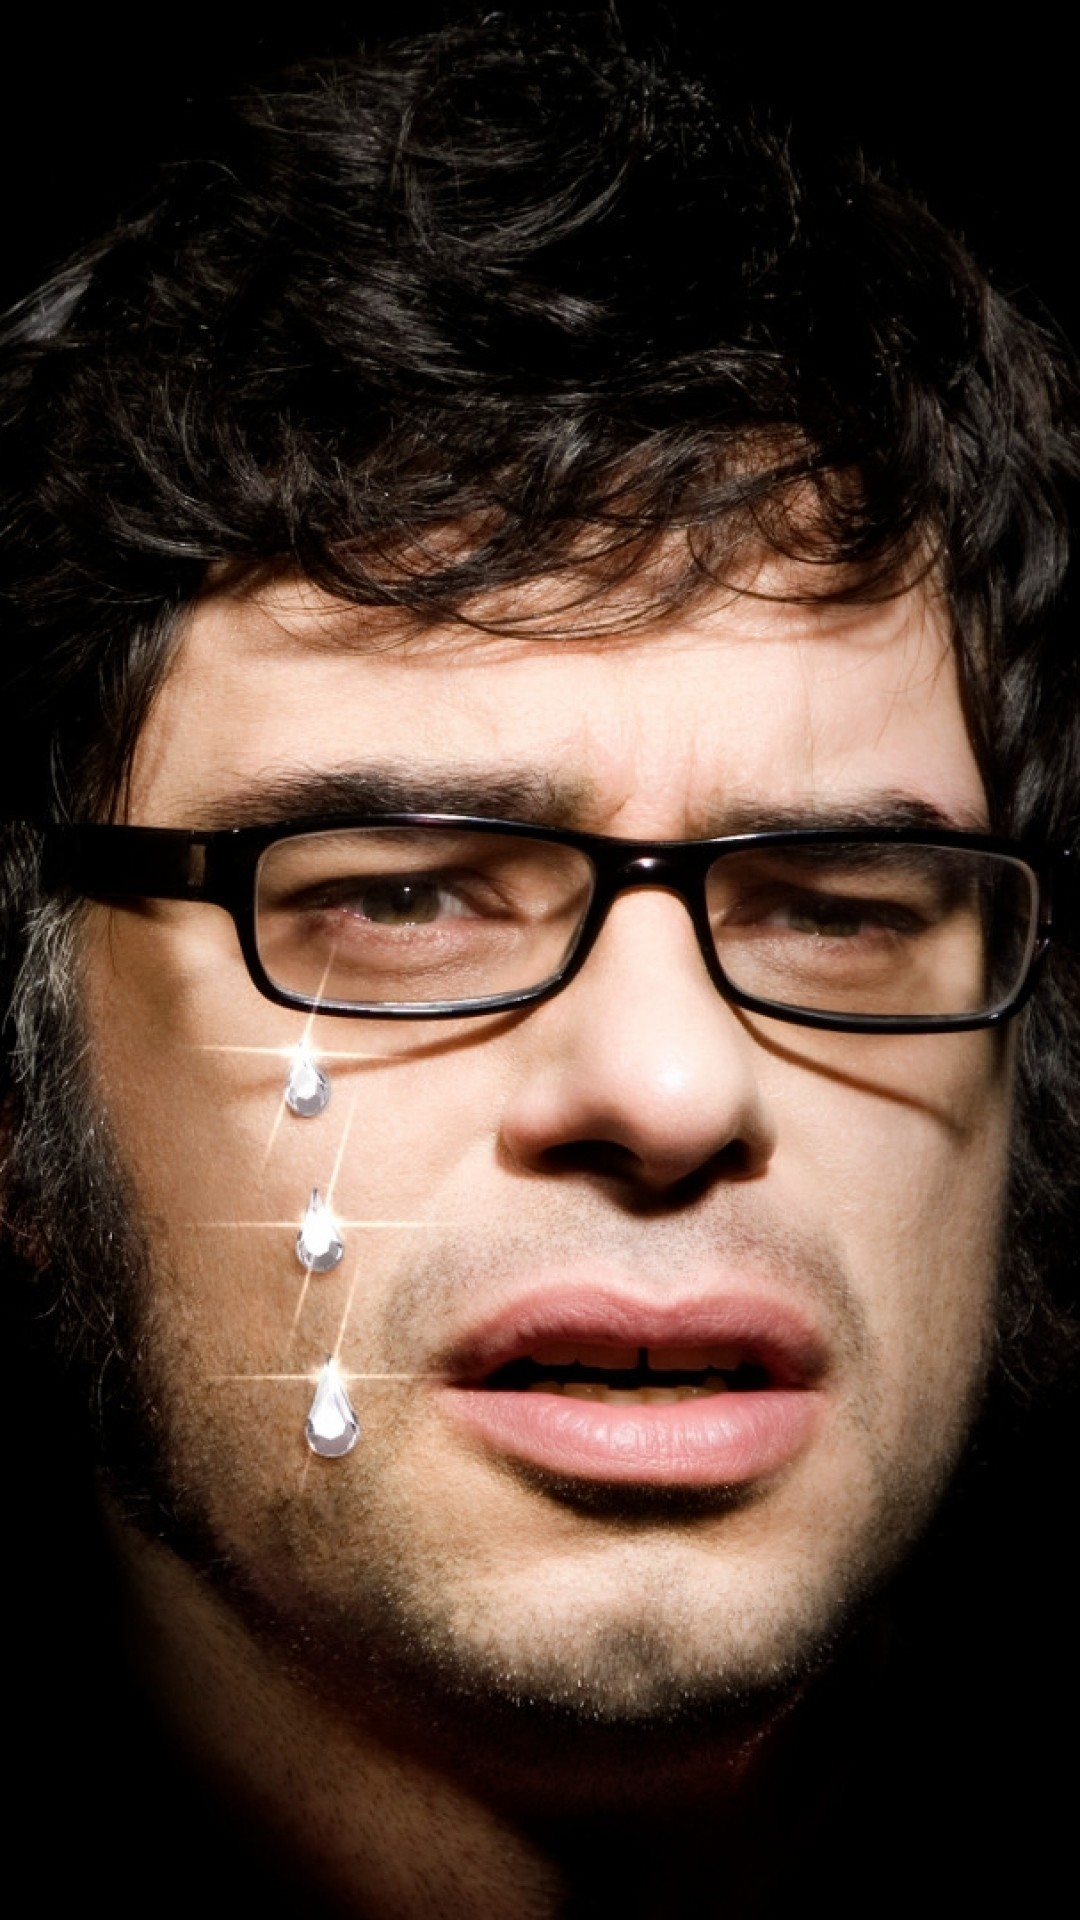 1080x1920   Wallpaper flight of the conchords, faces, graphics,  glasses, bristle